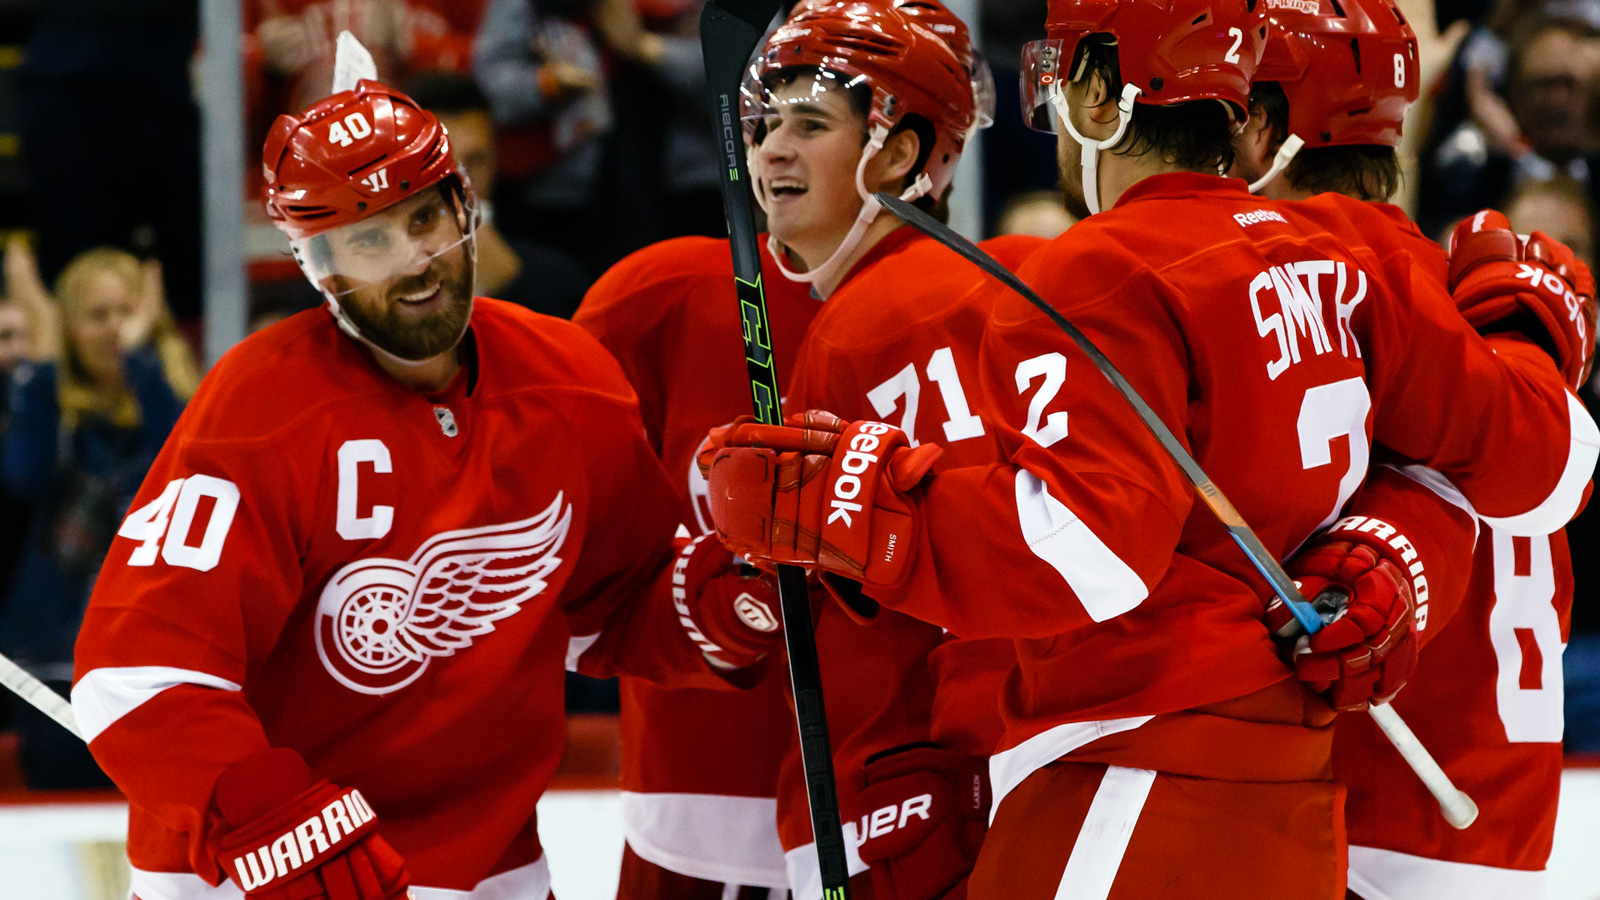 Wings look to avoid third straight loss Wednesday